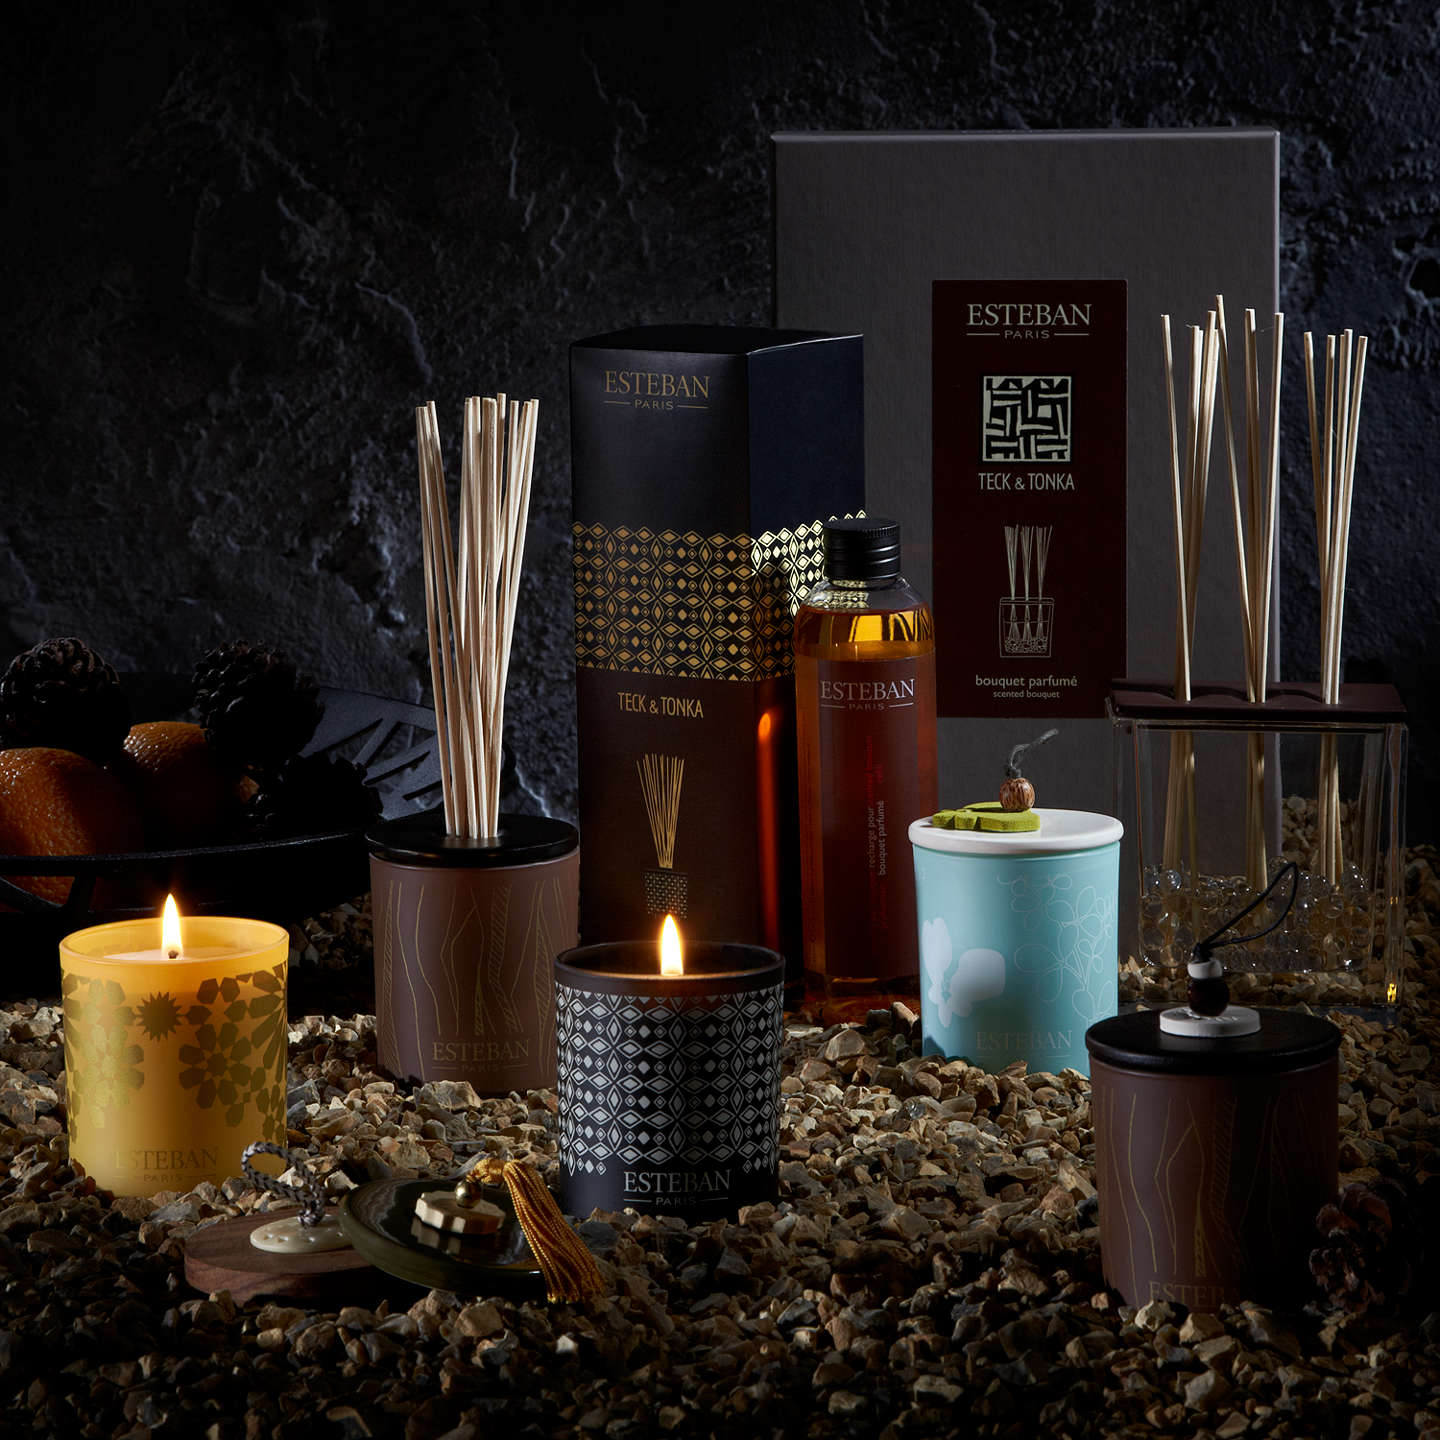 BuyEsteban Teck & Tonka Decorated Scented Candle, 170g Online at johnlewis.com